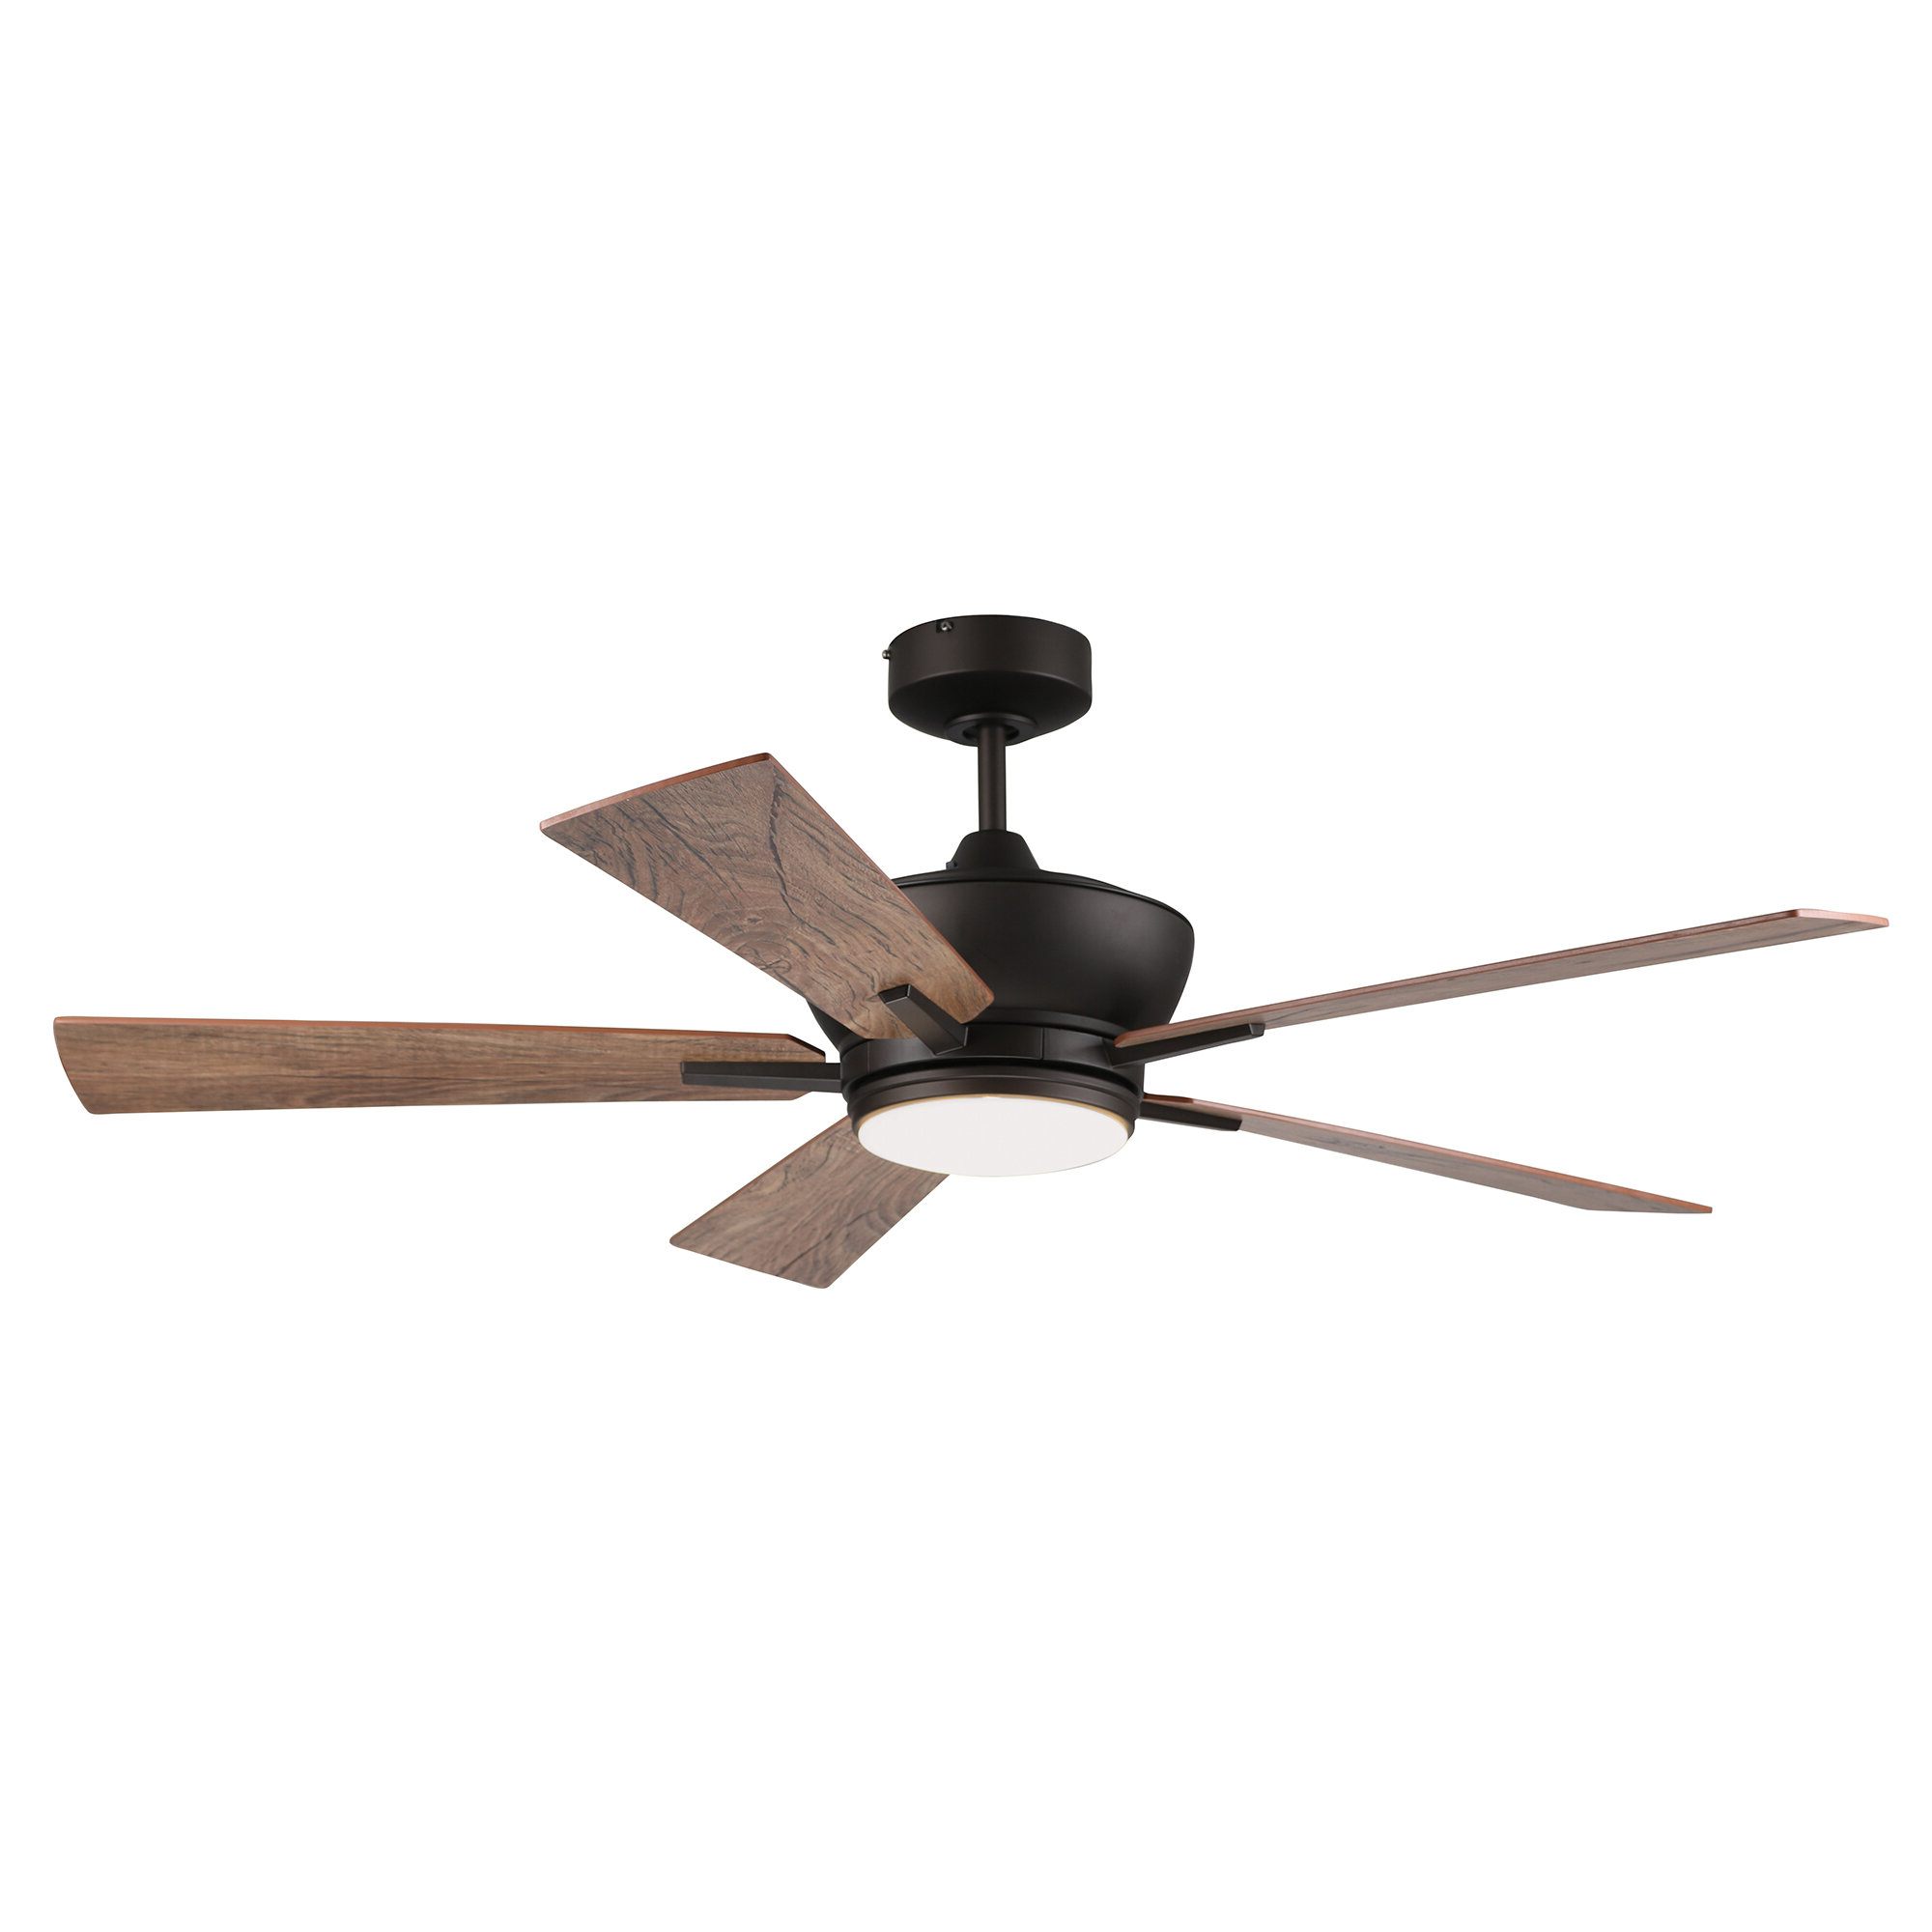 "2020 Sudie 5 Blade Led Ceiling Fans Inside 52"" Georgetown Tri Mount 5 Blade Ceiling Fan With Remote, Light Kit Included (View 19 of 20)"